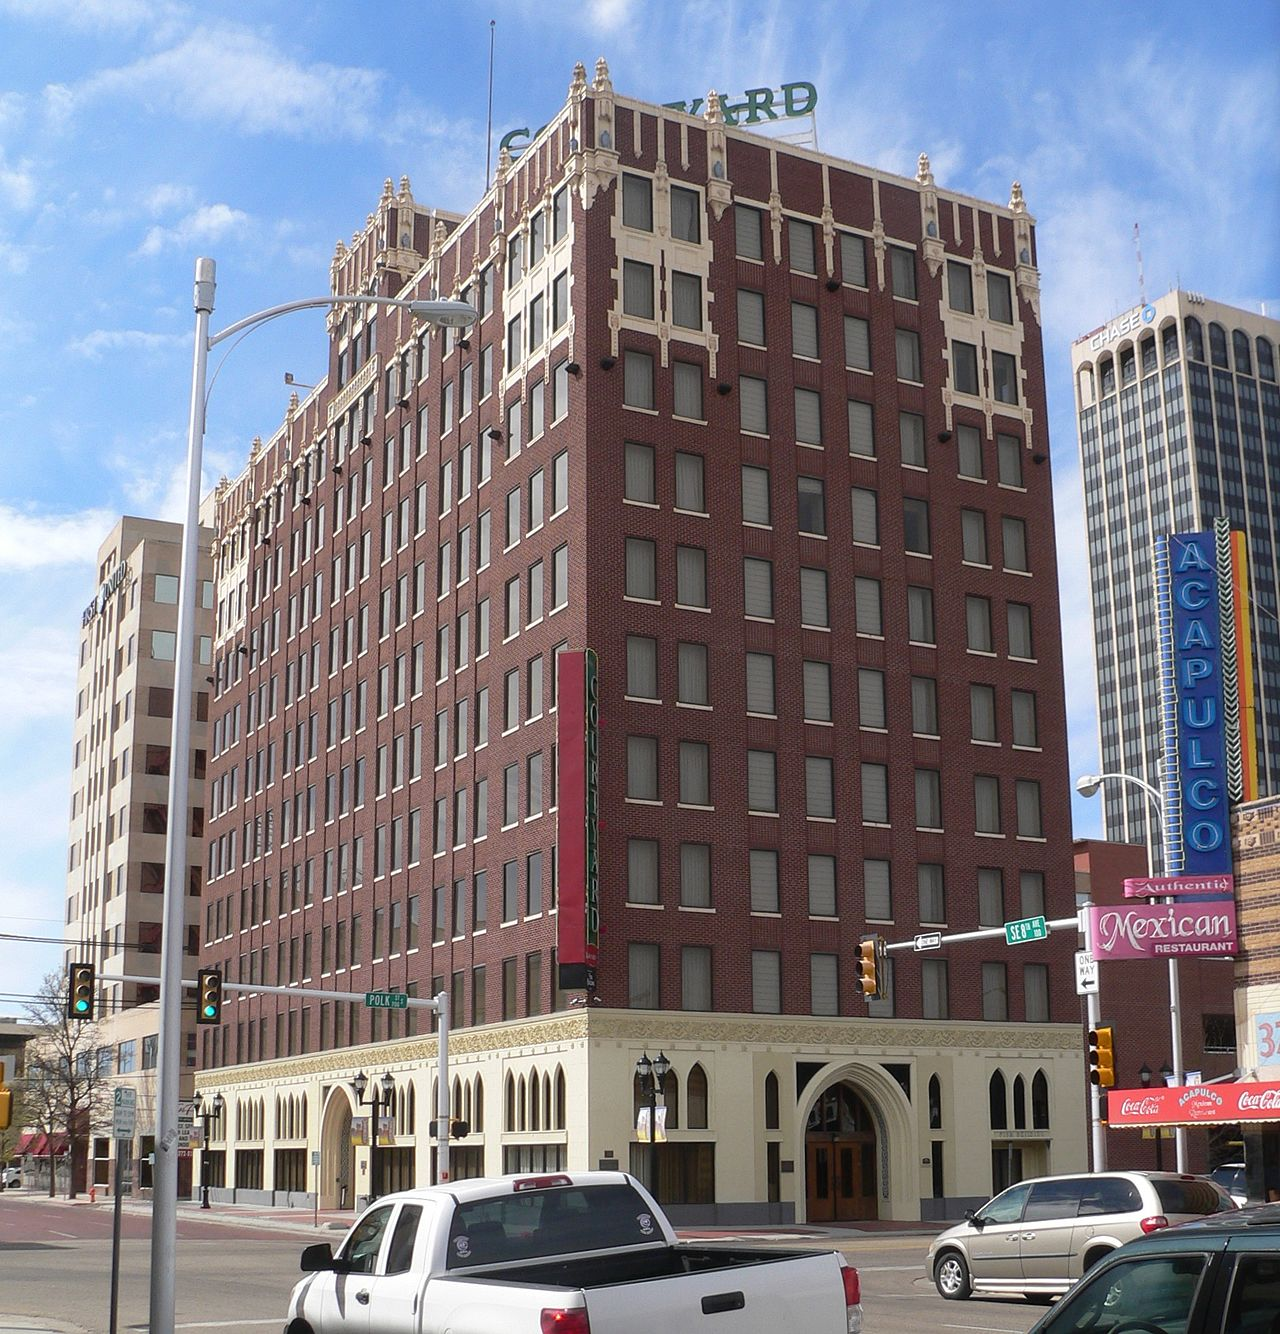 The Fisk Medical Arts Building was built in 1928 and was converted into a hotel in 2010.